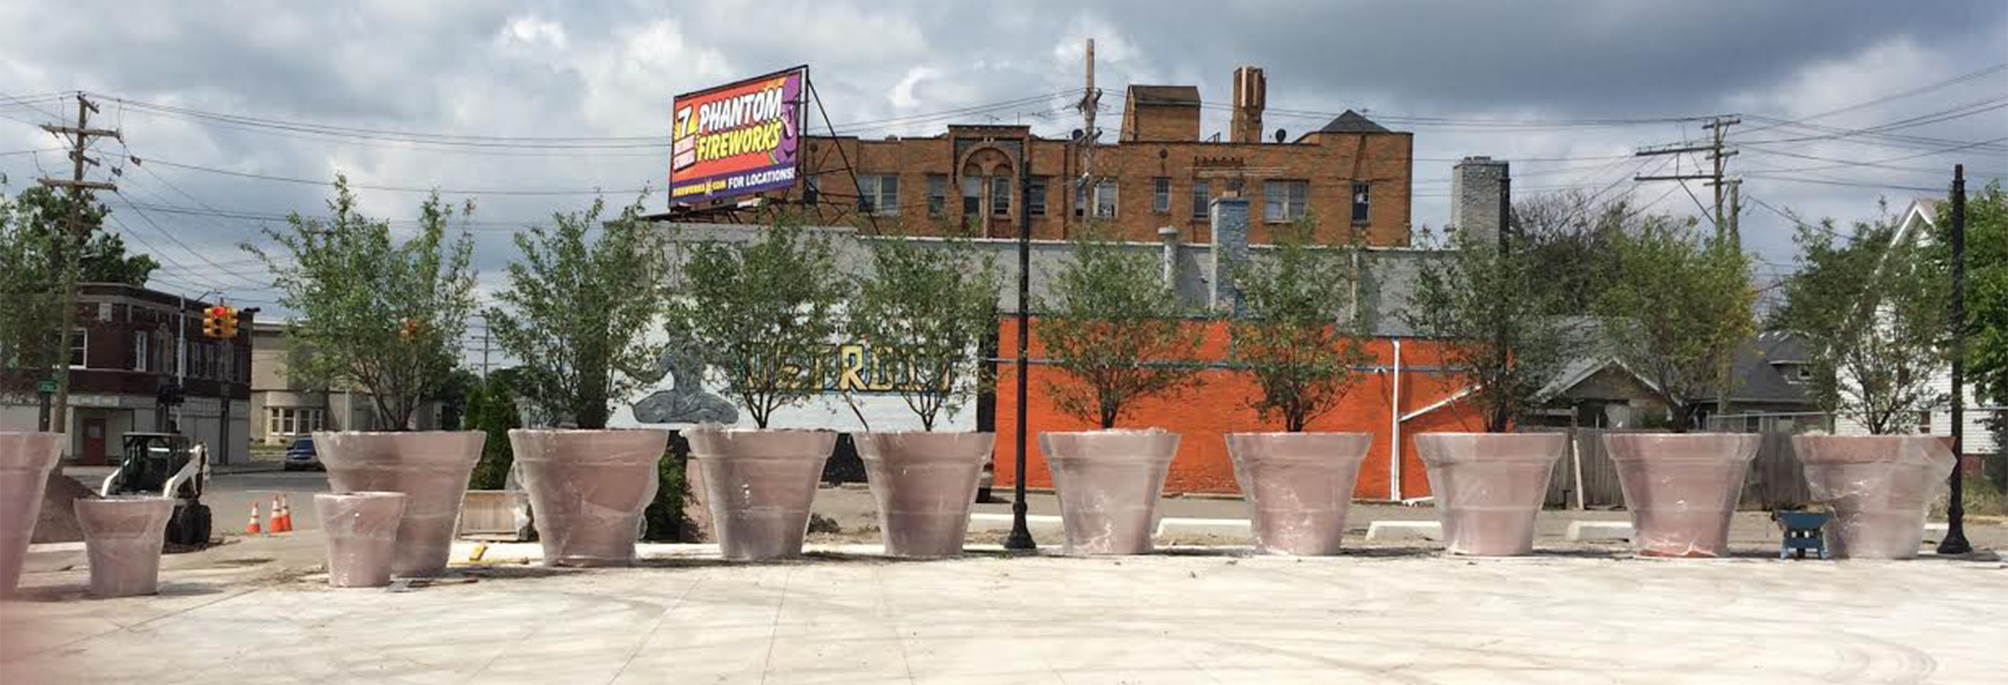 Grosse Pointe's prelude to the fence: blocking Detroit traffic with giant potted plants.